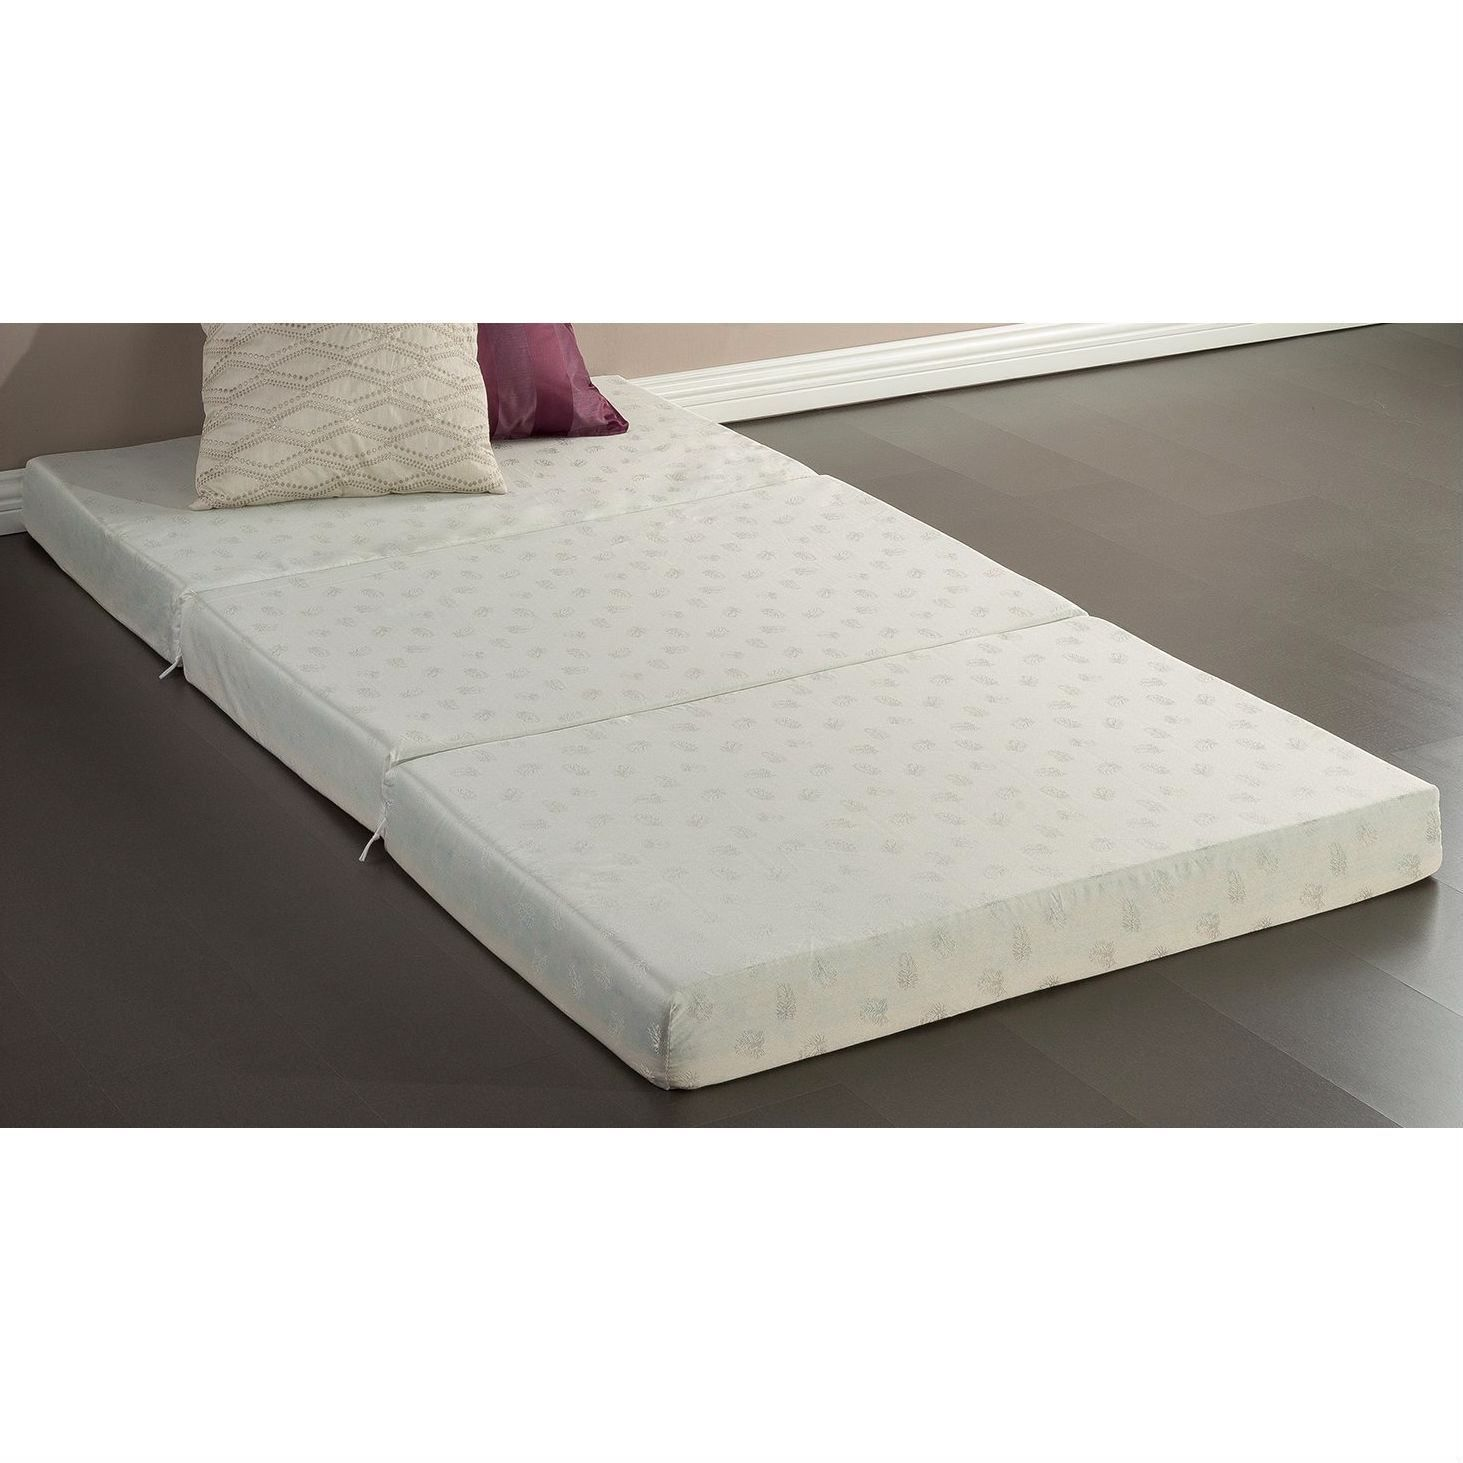 topper mattress washable now bamboo queen bedding mats cheap buy memory foam cover mat australia removable cool giselle price zipper bed elastic gel